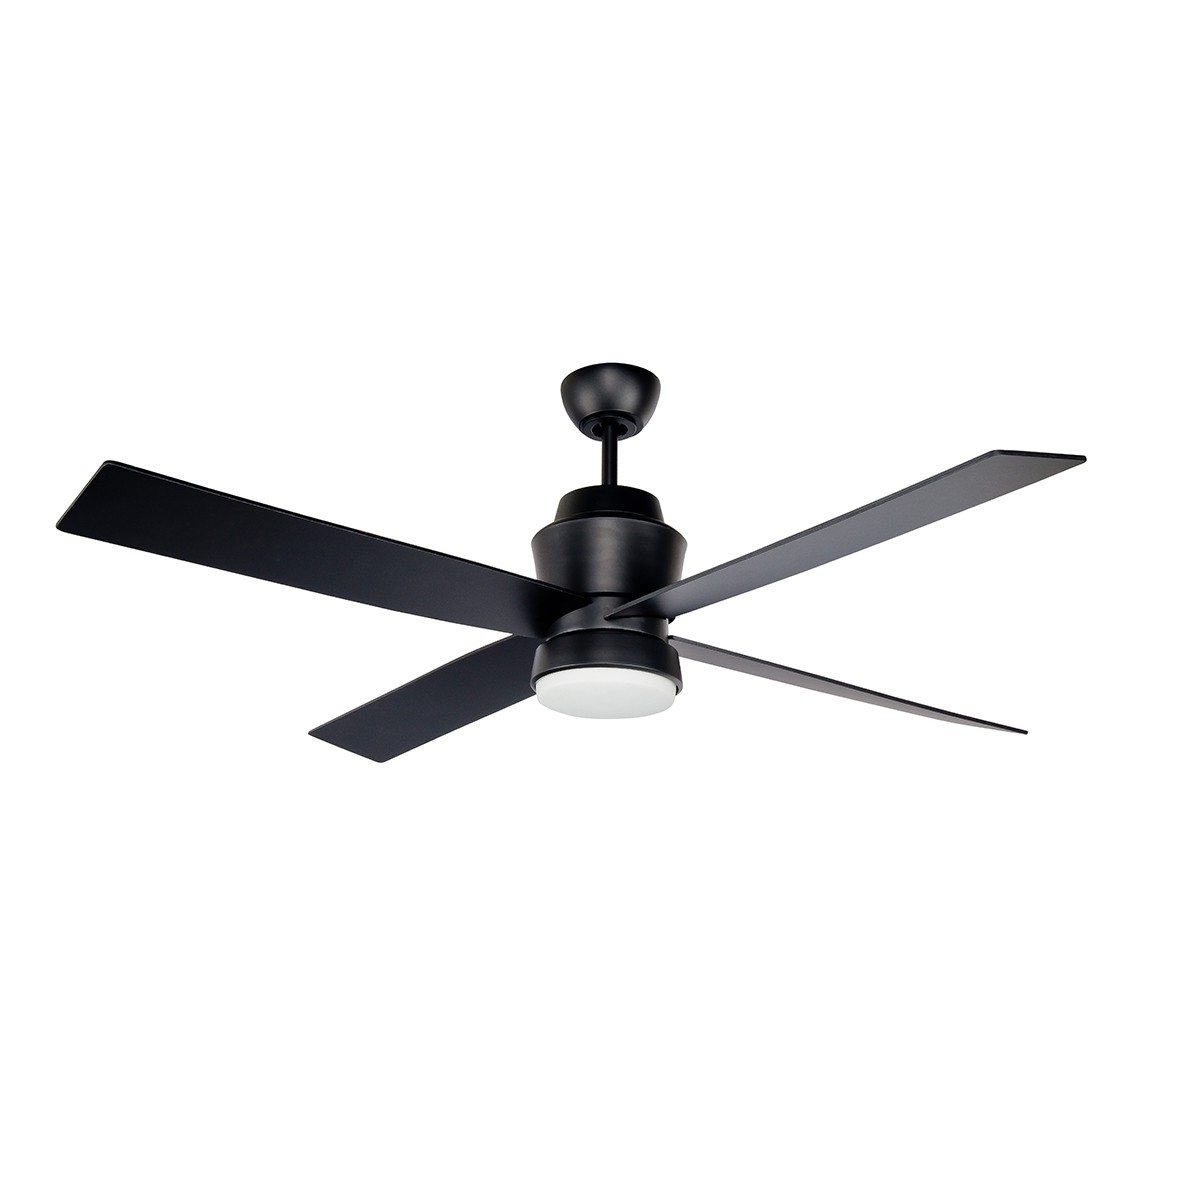 Prologue Outdoor Ceiling Fan :: Stori Modern For 2019 Black Outdoor Ceiling Fans With Light (View 8 of 20)